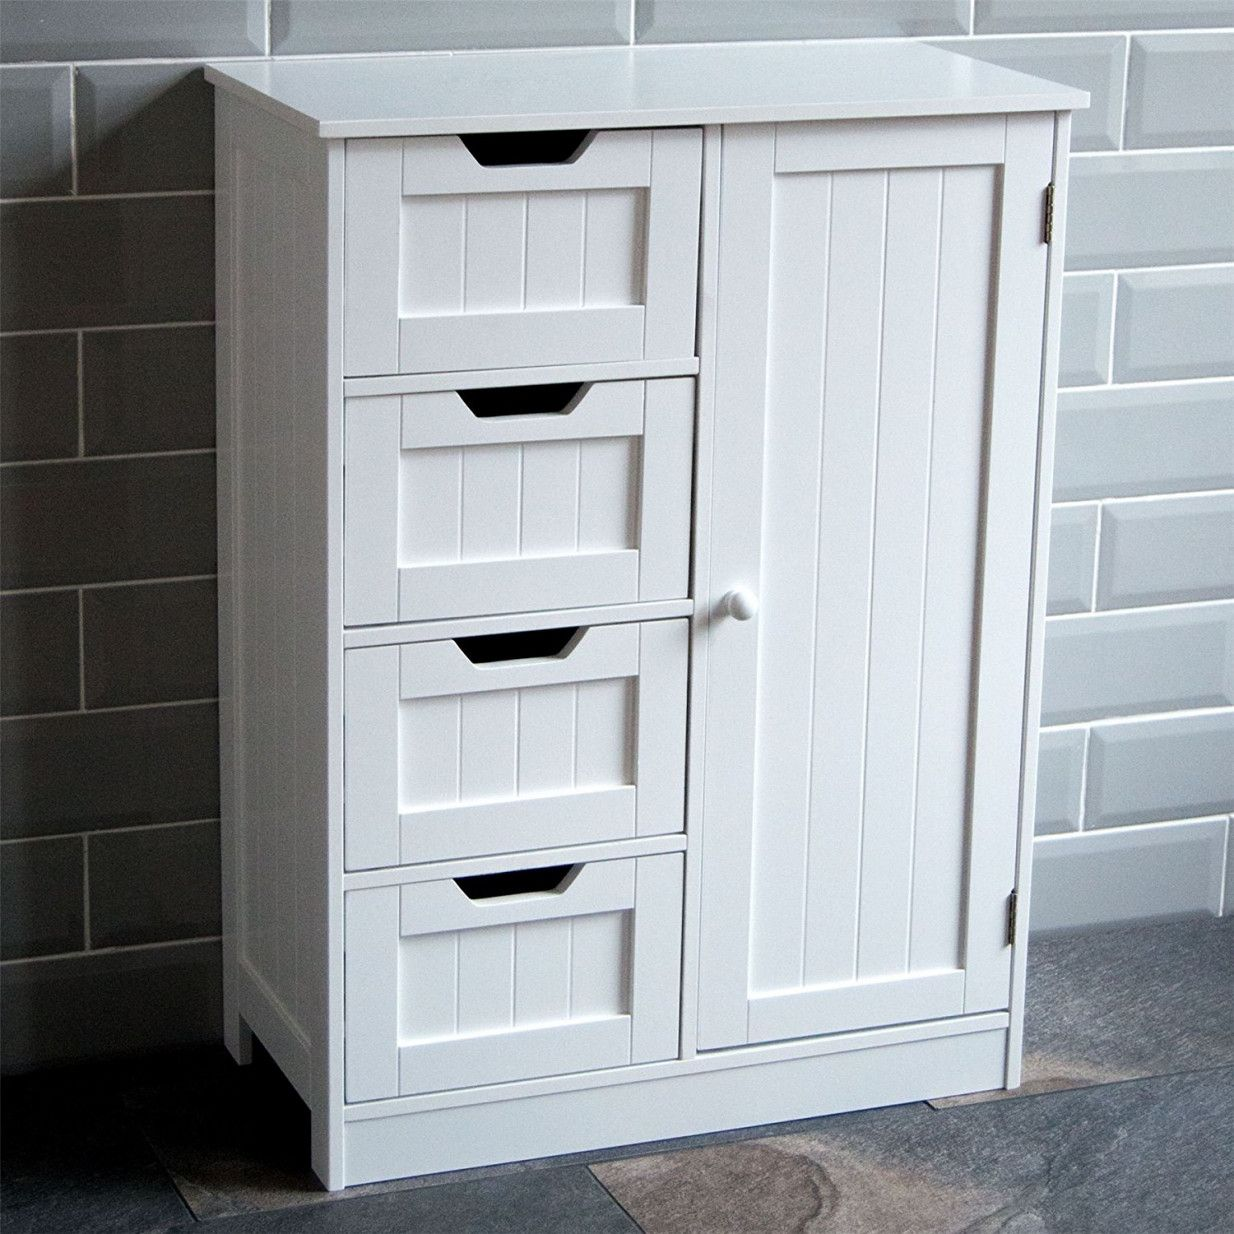 Lovely Bathroom Stand Alone Cabinet